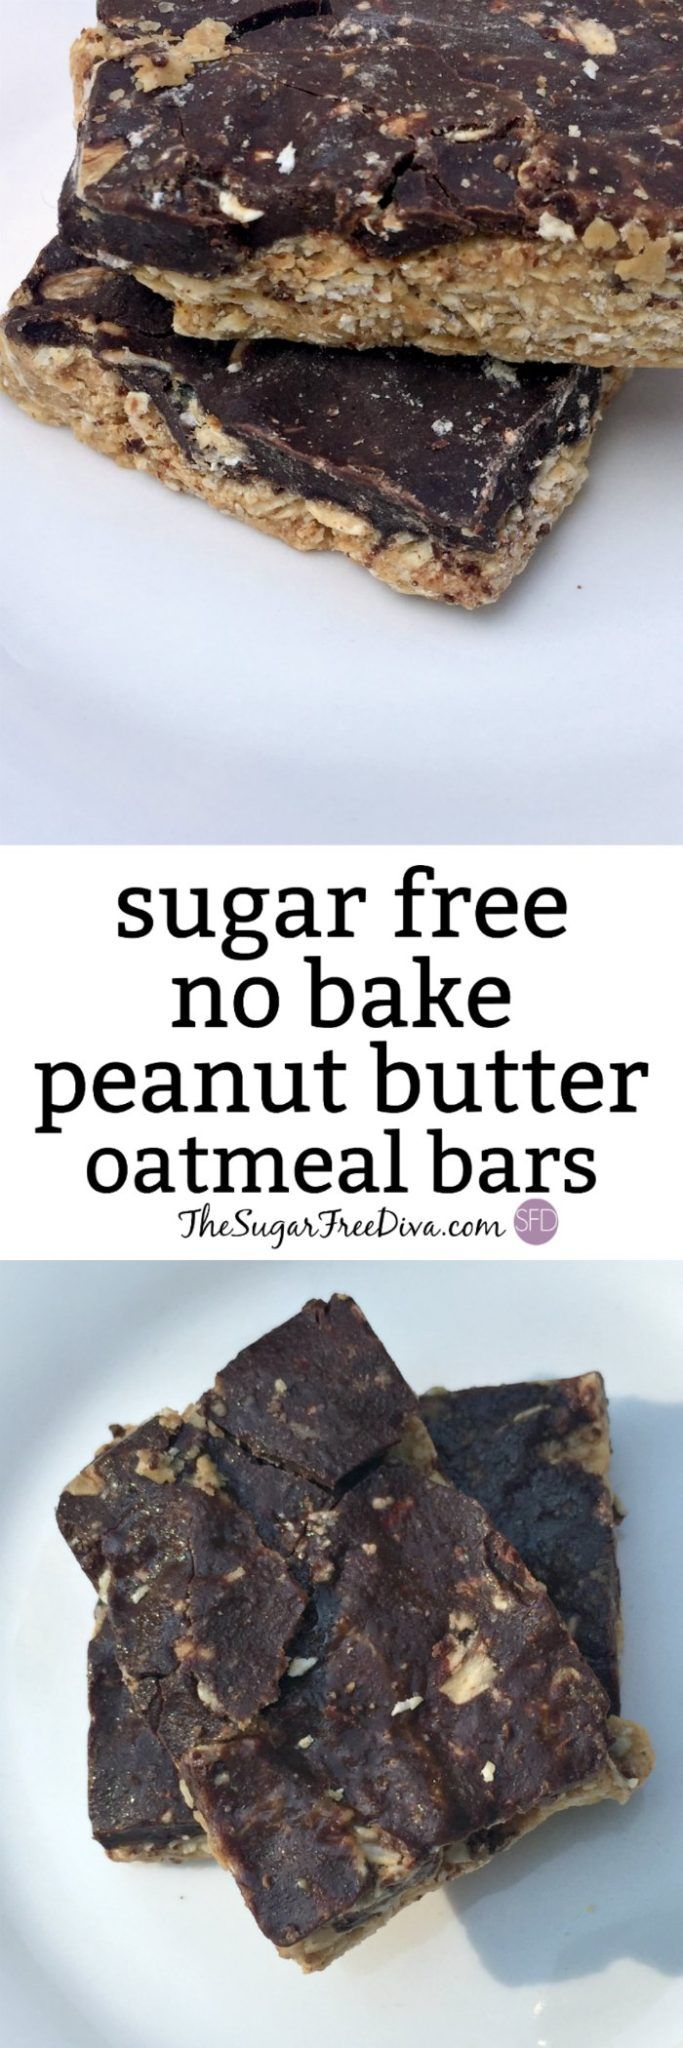 These Sugar Free No Bake Oatmeal Peanut Butter Bars really make for an easy treat. I like that I can make this, freeze them away, and then grab them on the go when I am in a hurry to get out of the house.  Sugar Free No Bake Oatmeal Peanut Butter Bars You should know that this is really an easy...